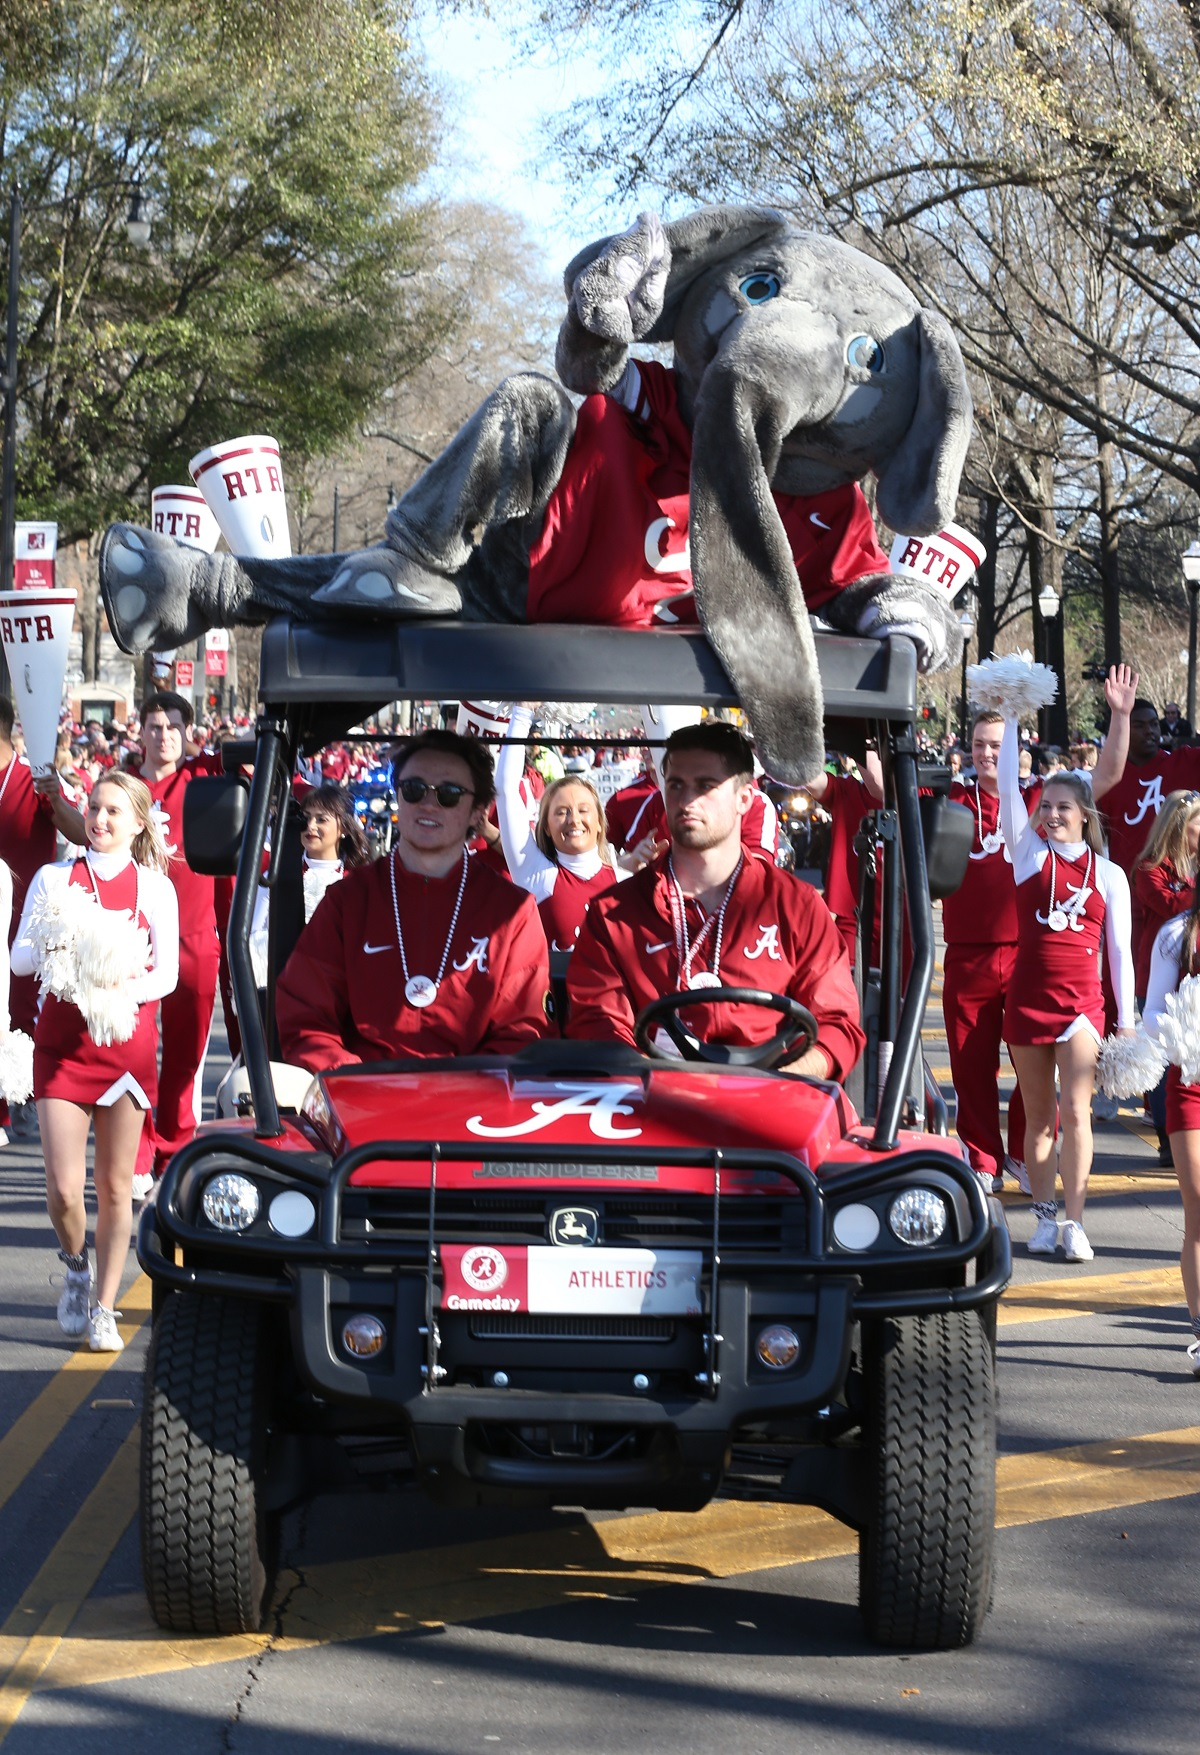 All of those involved in the Alabama football program got recognized with a spot in the parade. (Robert Sutton)